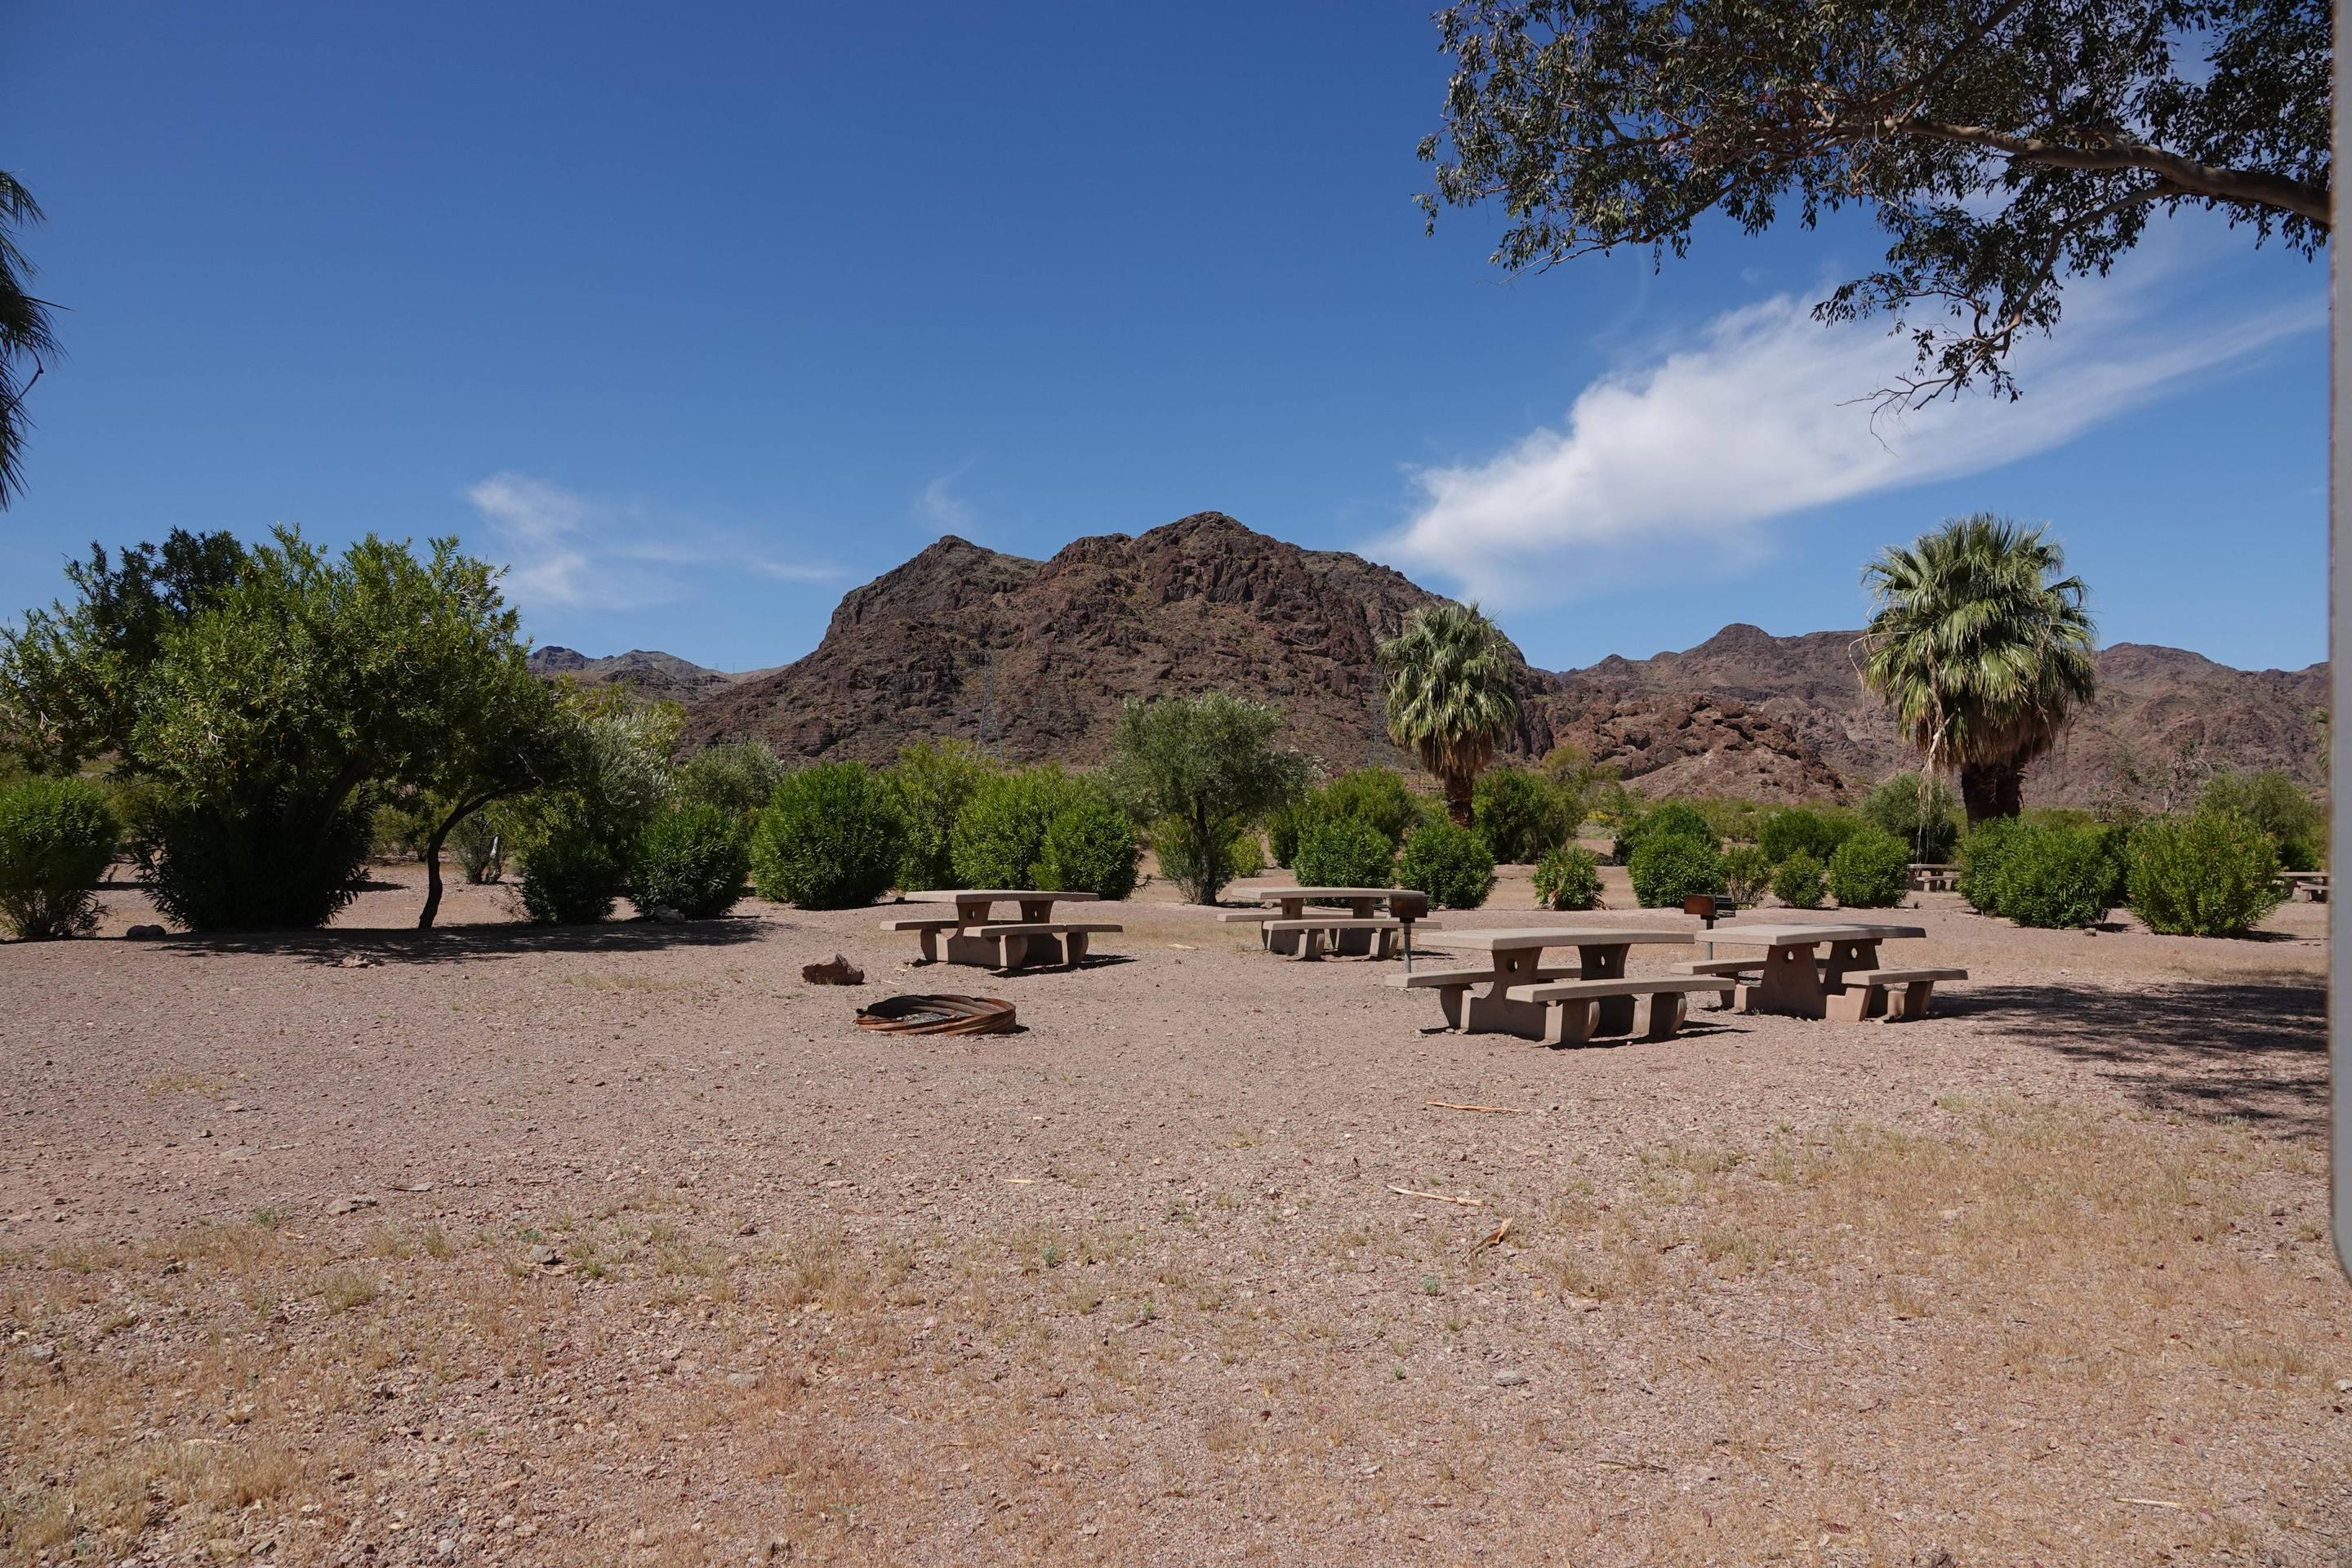 Open Campsitewith tables located in a desert settingBoulder Beach Group Site 2